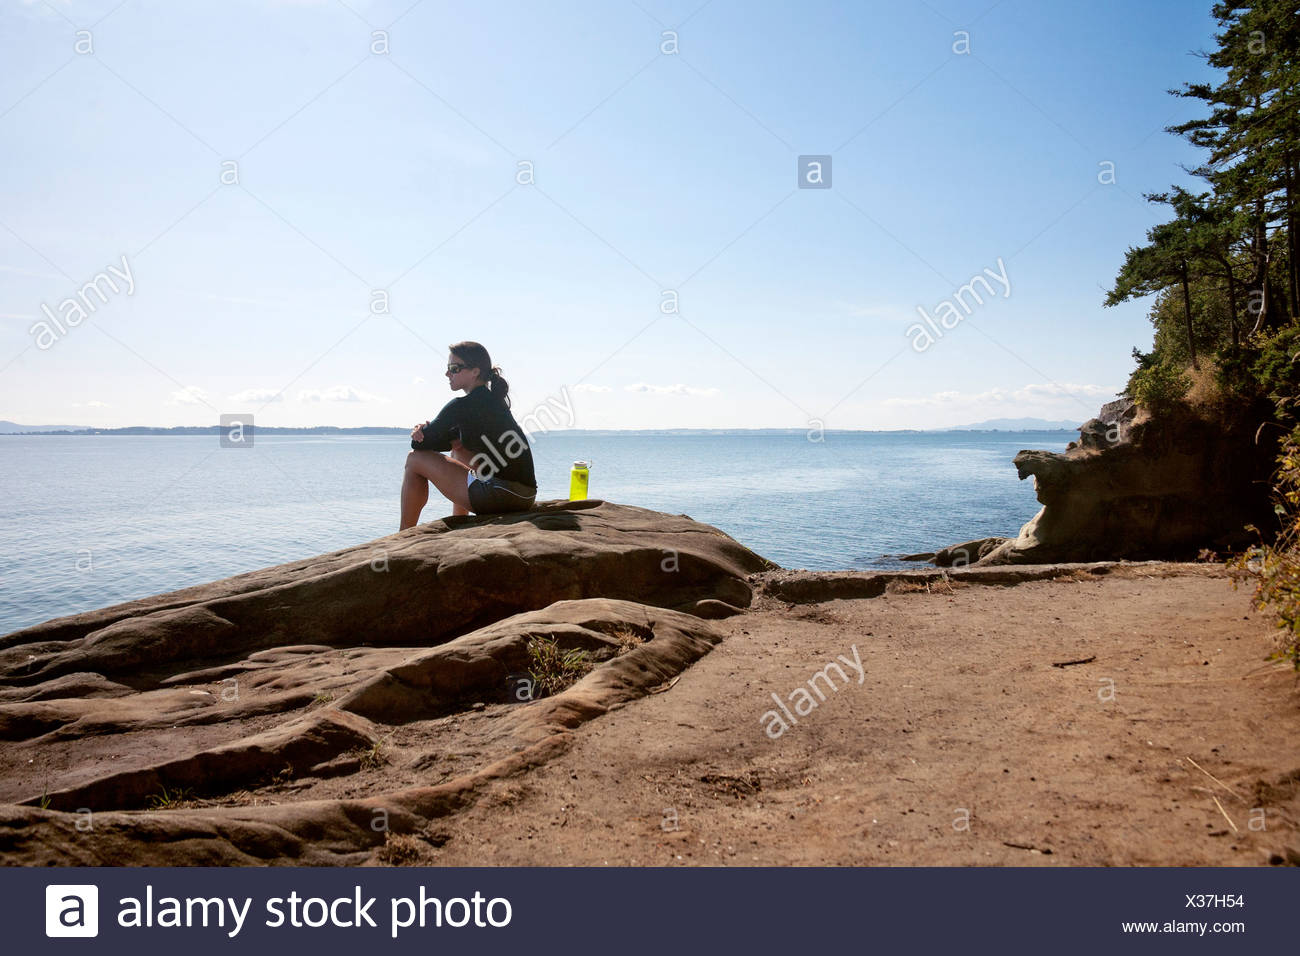 A woman sits on sandstone on the coastline of Larrabee State Park. - Stock Image